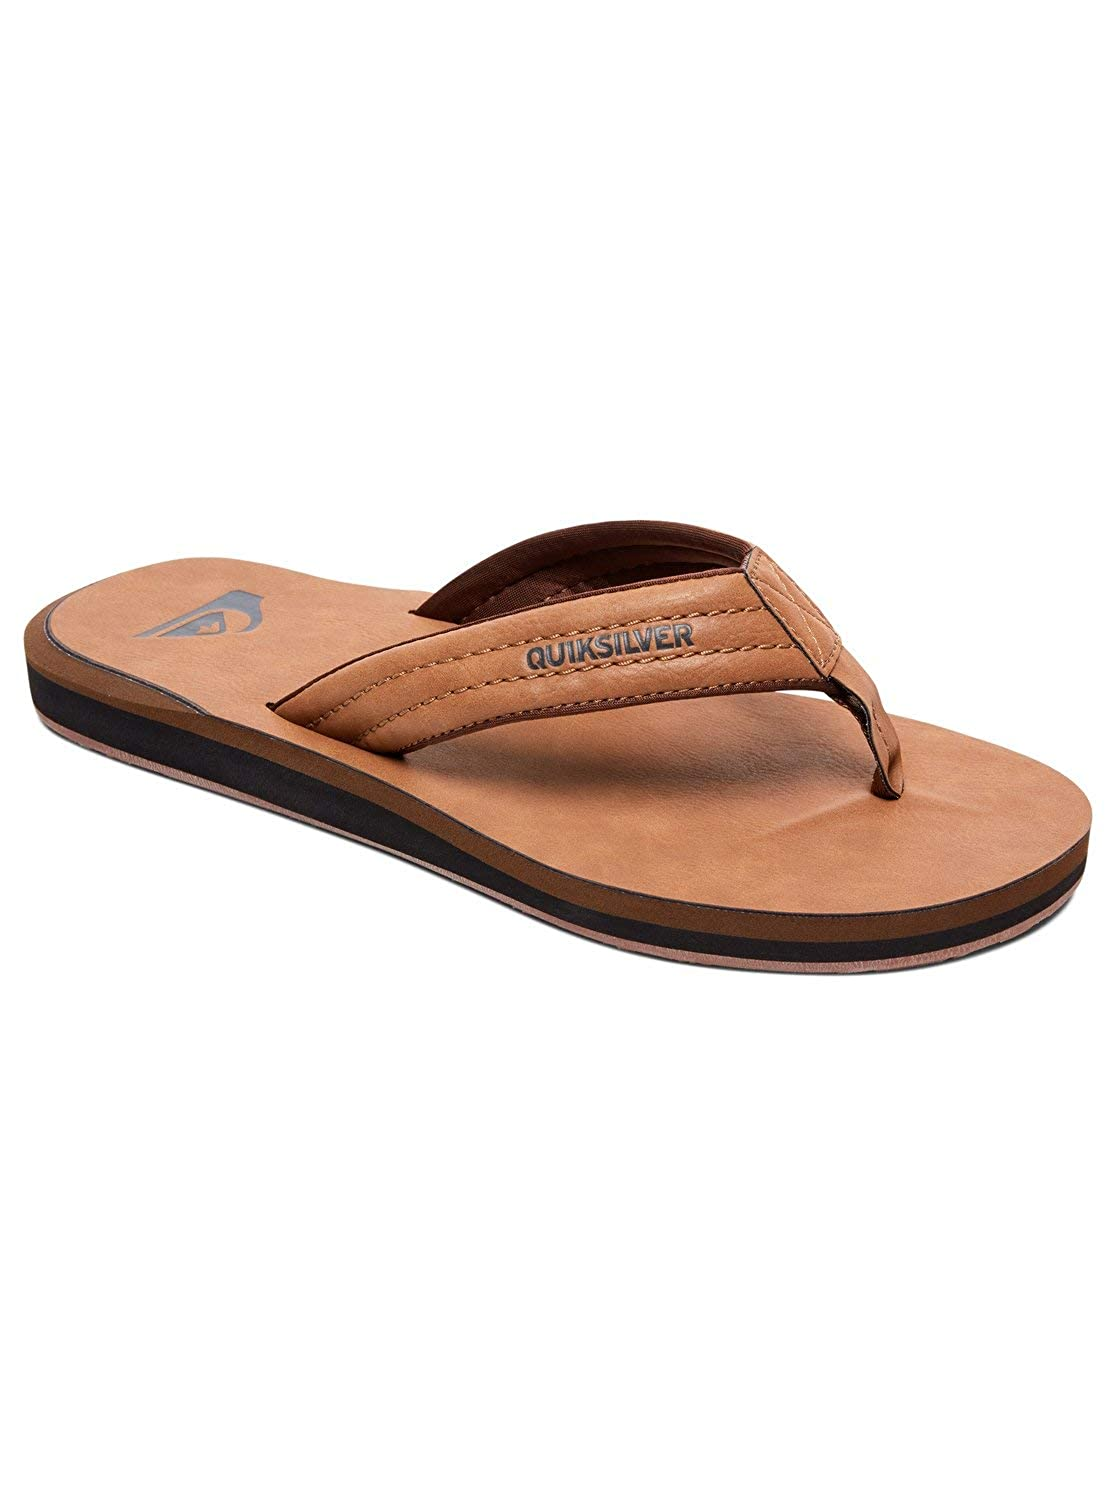 TALLA 39 EU. Quiksilver Carver Nubuck-Sandals For Men, Chanclas para Hombre